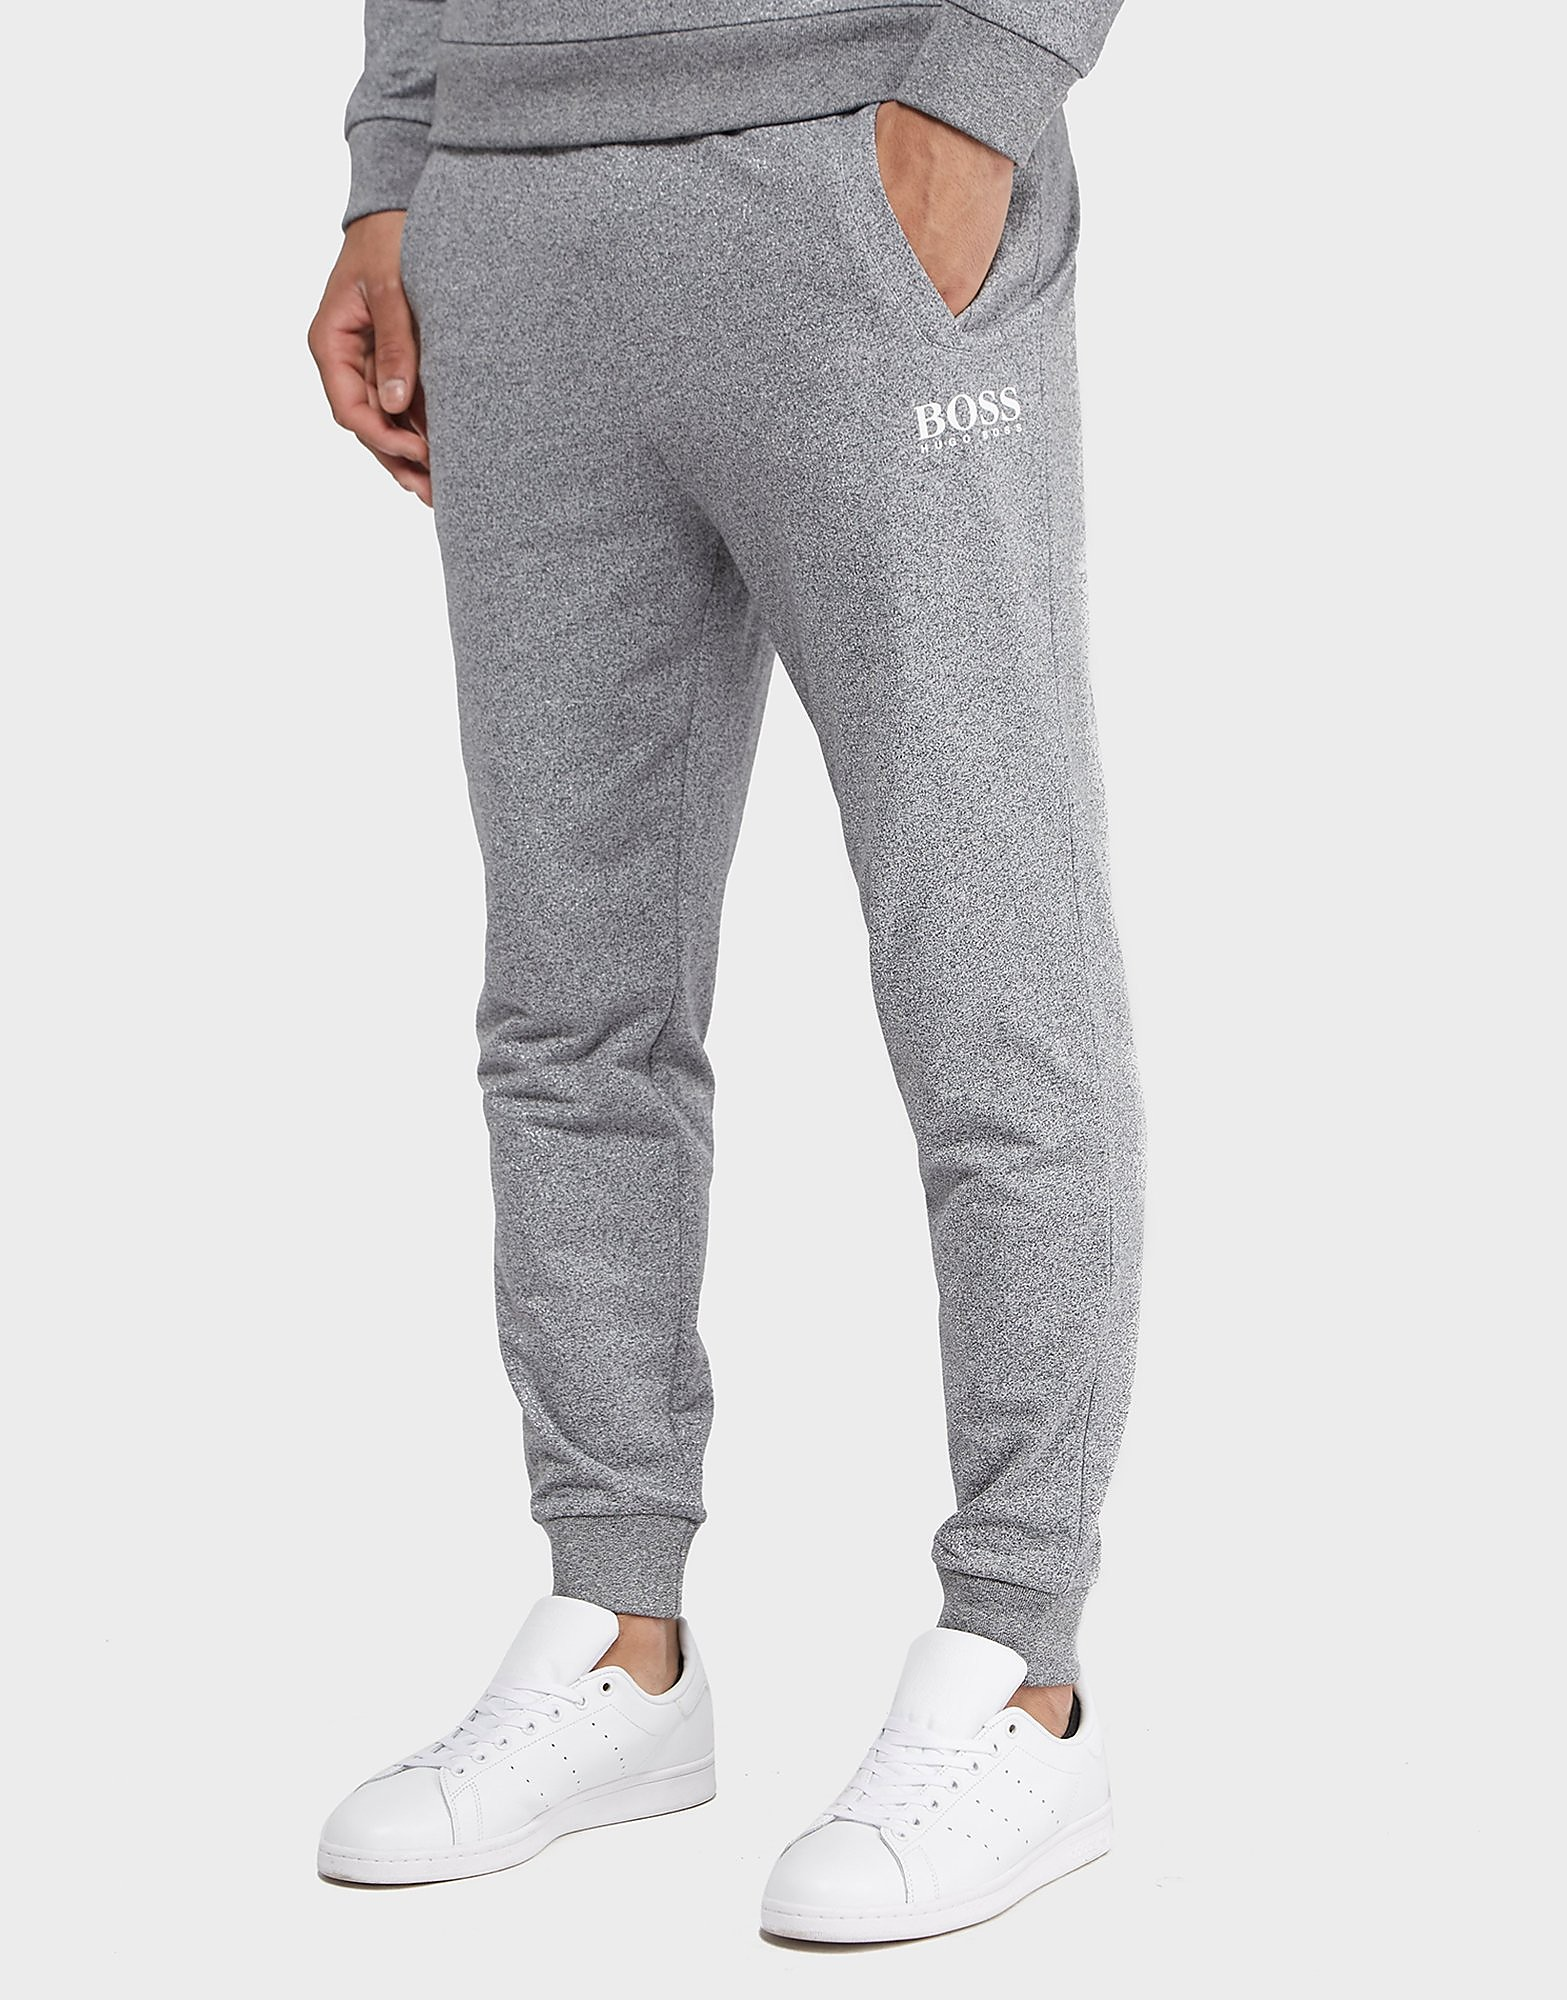 BOSS Heritage Cuff Fleece Pants